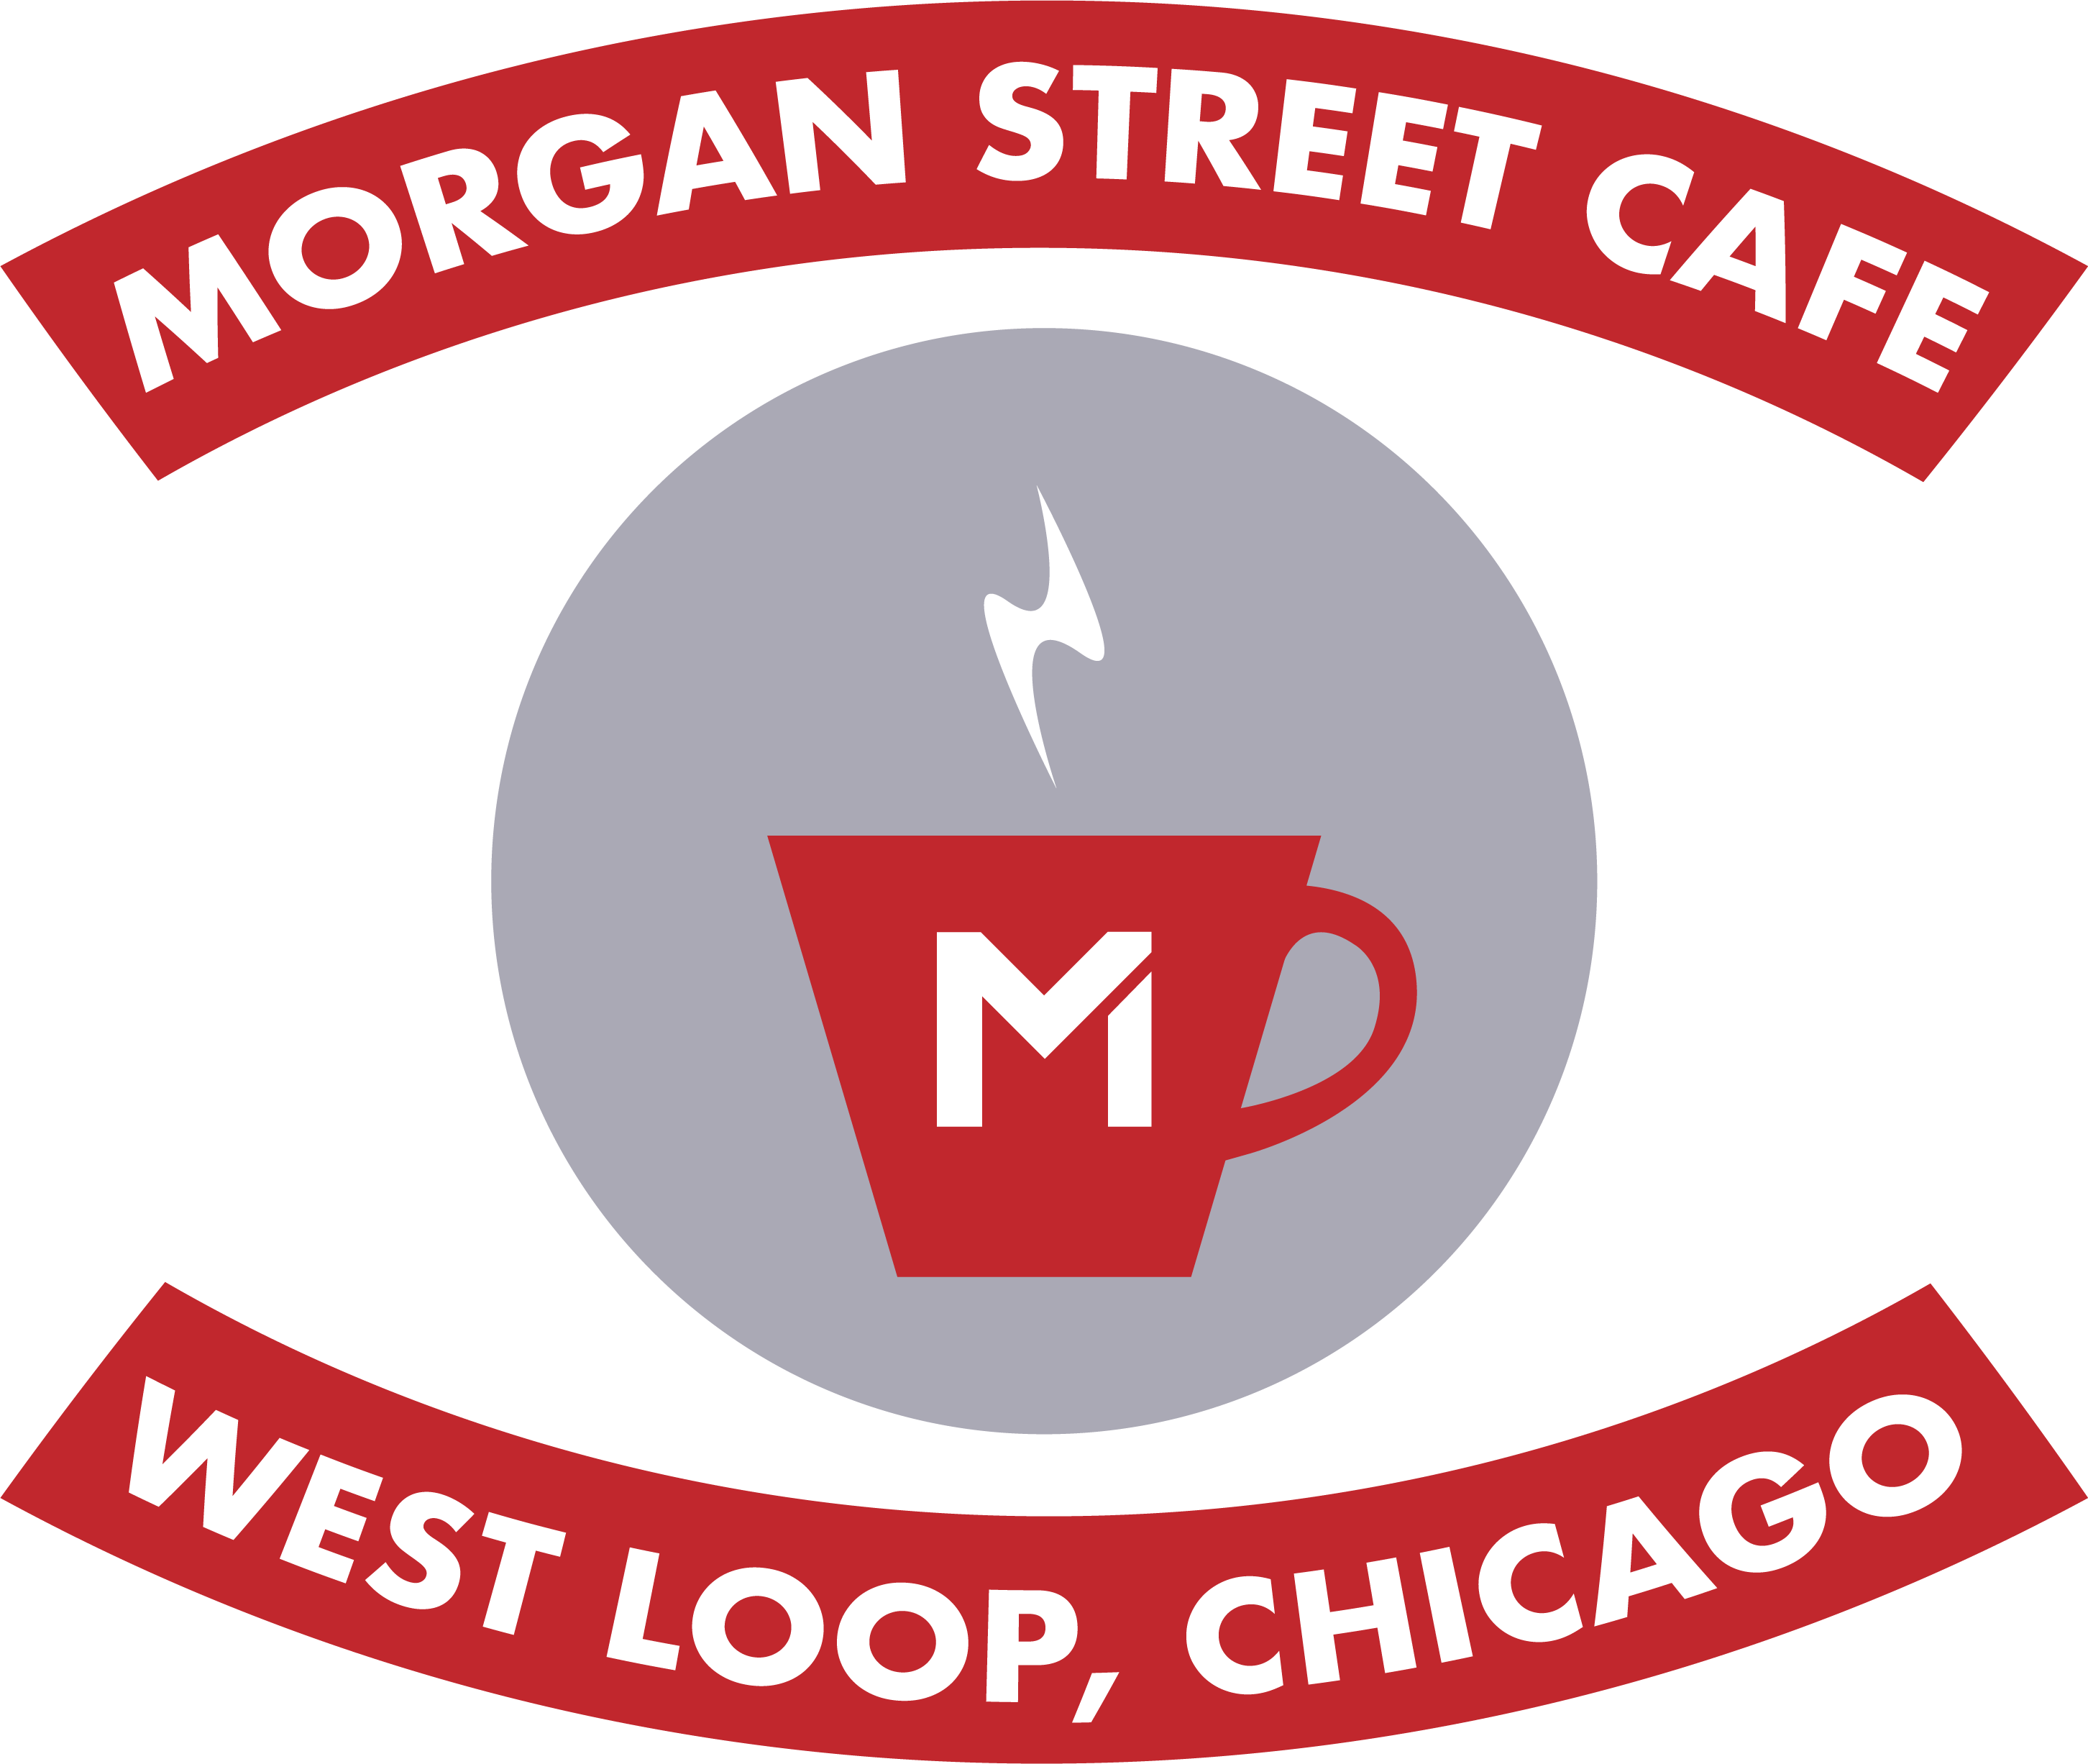 Morgan Street Cafe